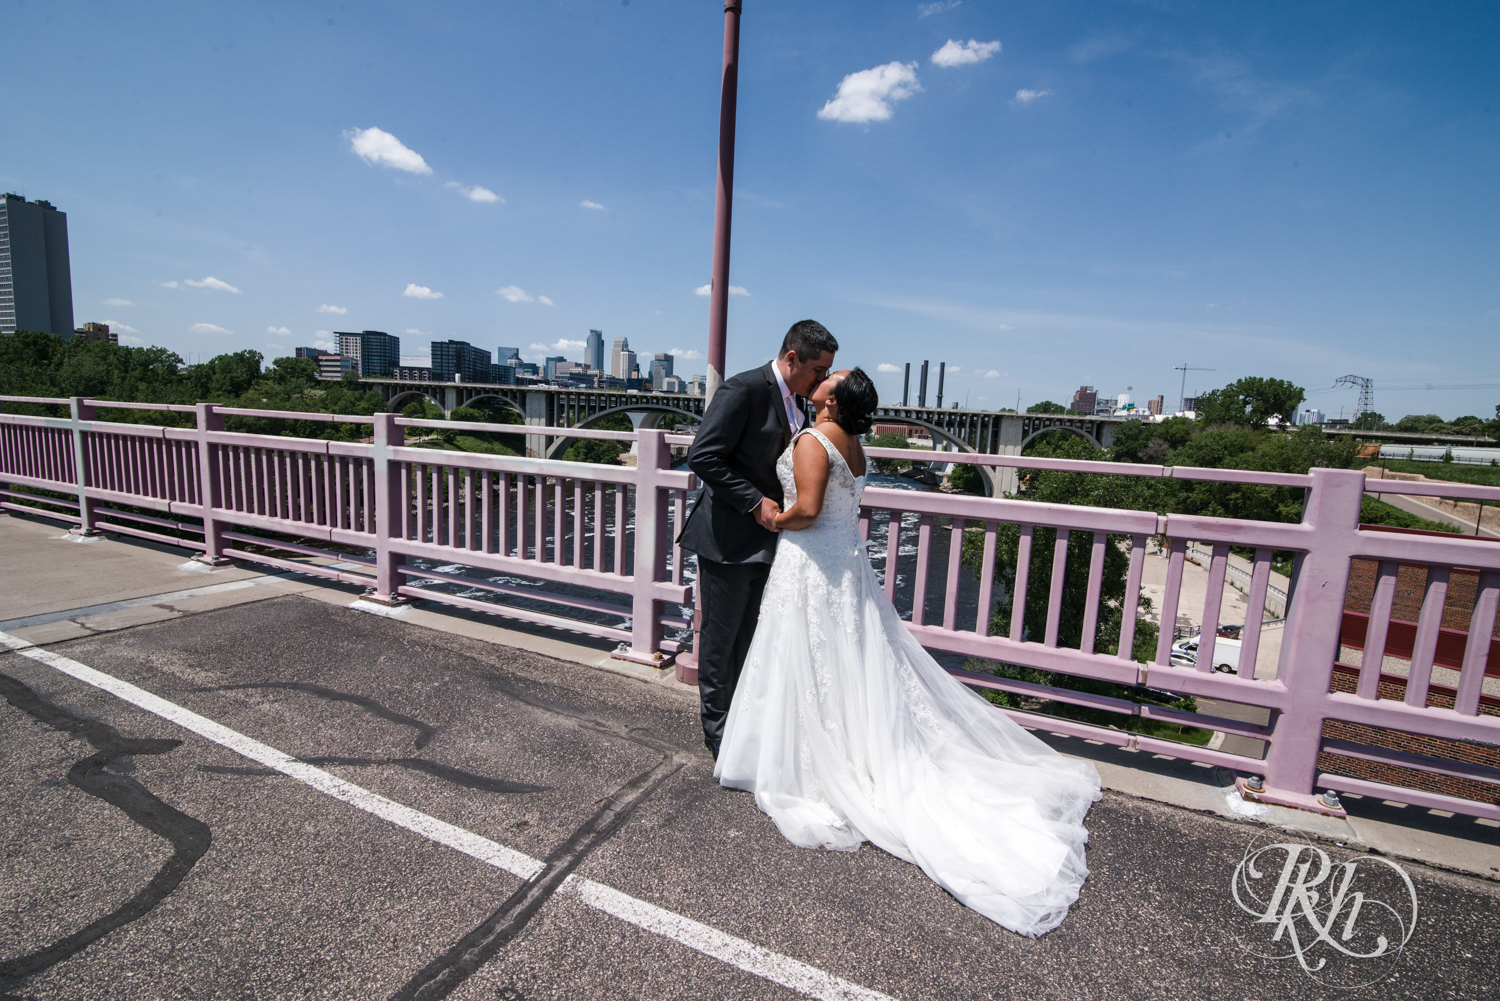 Jana and Paul - Minnesota Wedding Photography - Kellerman's Event Center - RKH Images  (27 of 77).jpg